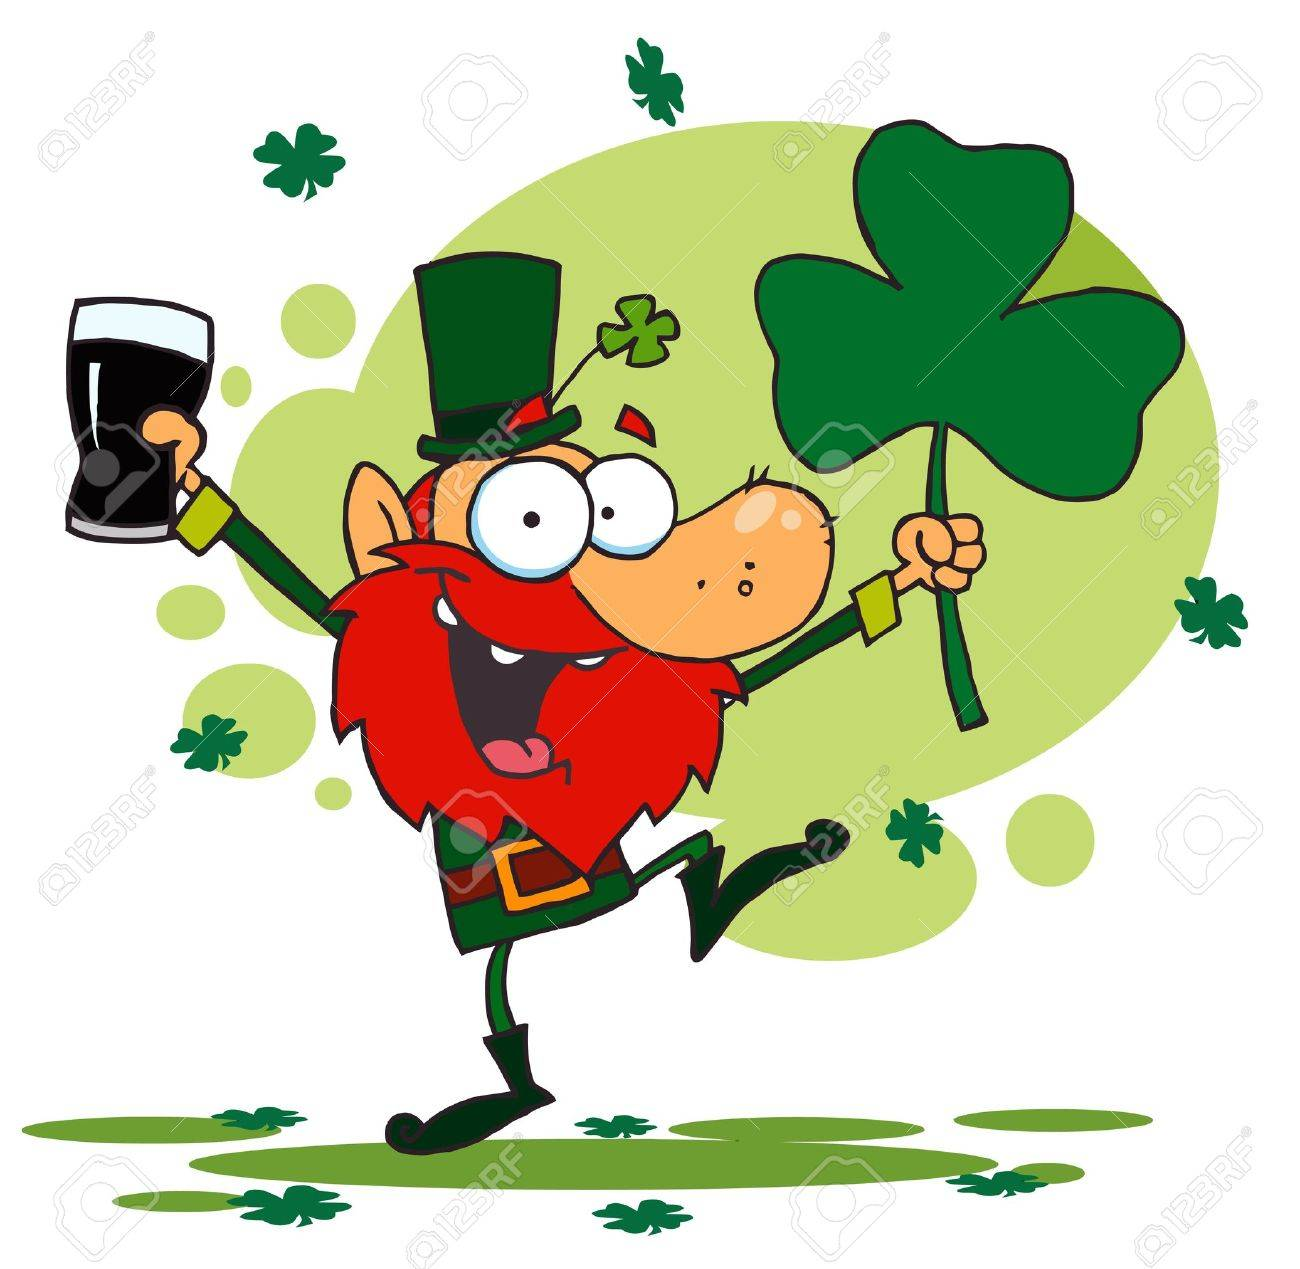 Uncategorized Dancing Leprechauns dancing leprechaun holding a shamrock and beer royalty free stock vector 6906315